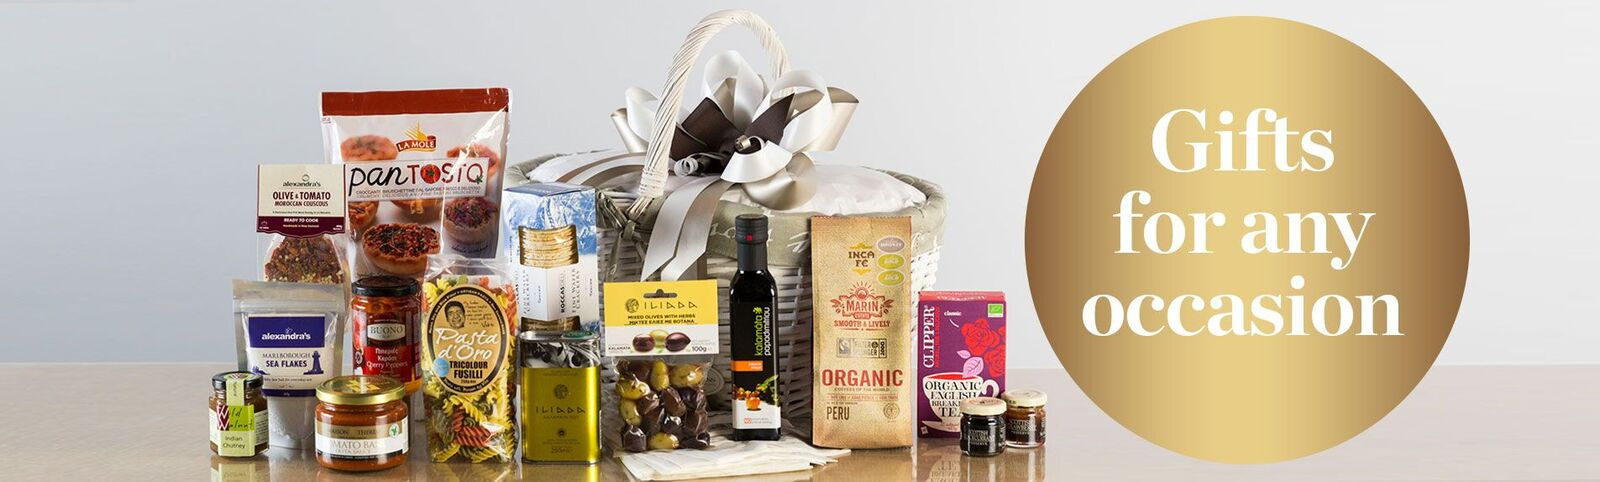 My Goodness Gift Hampers New Zealand